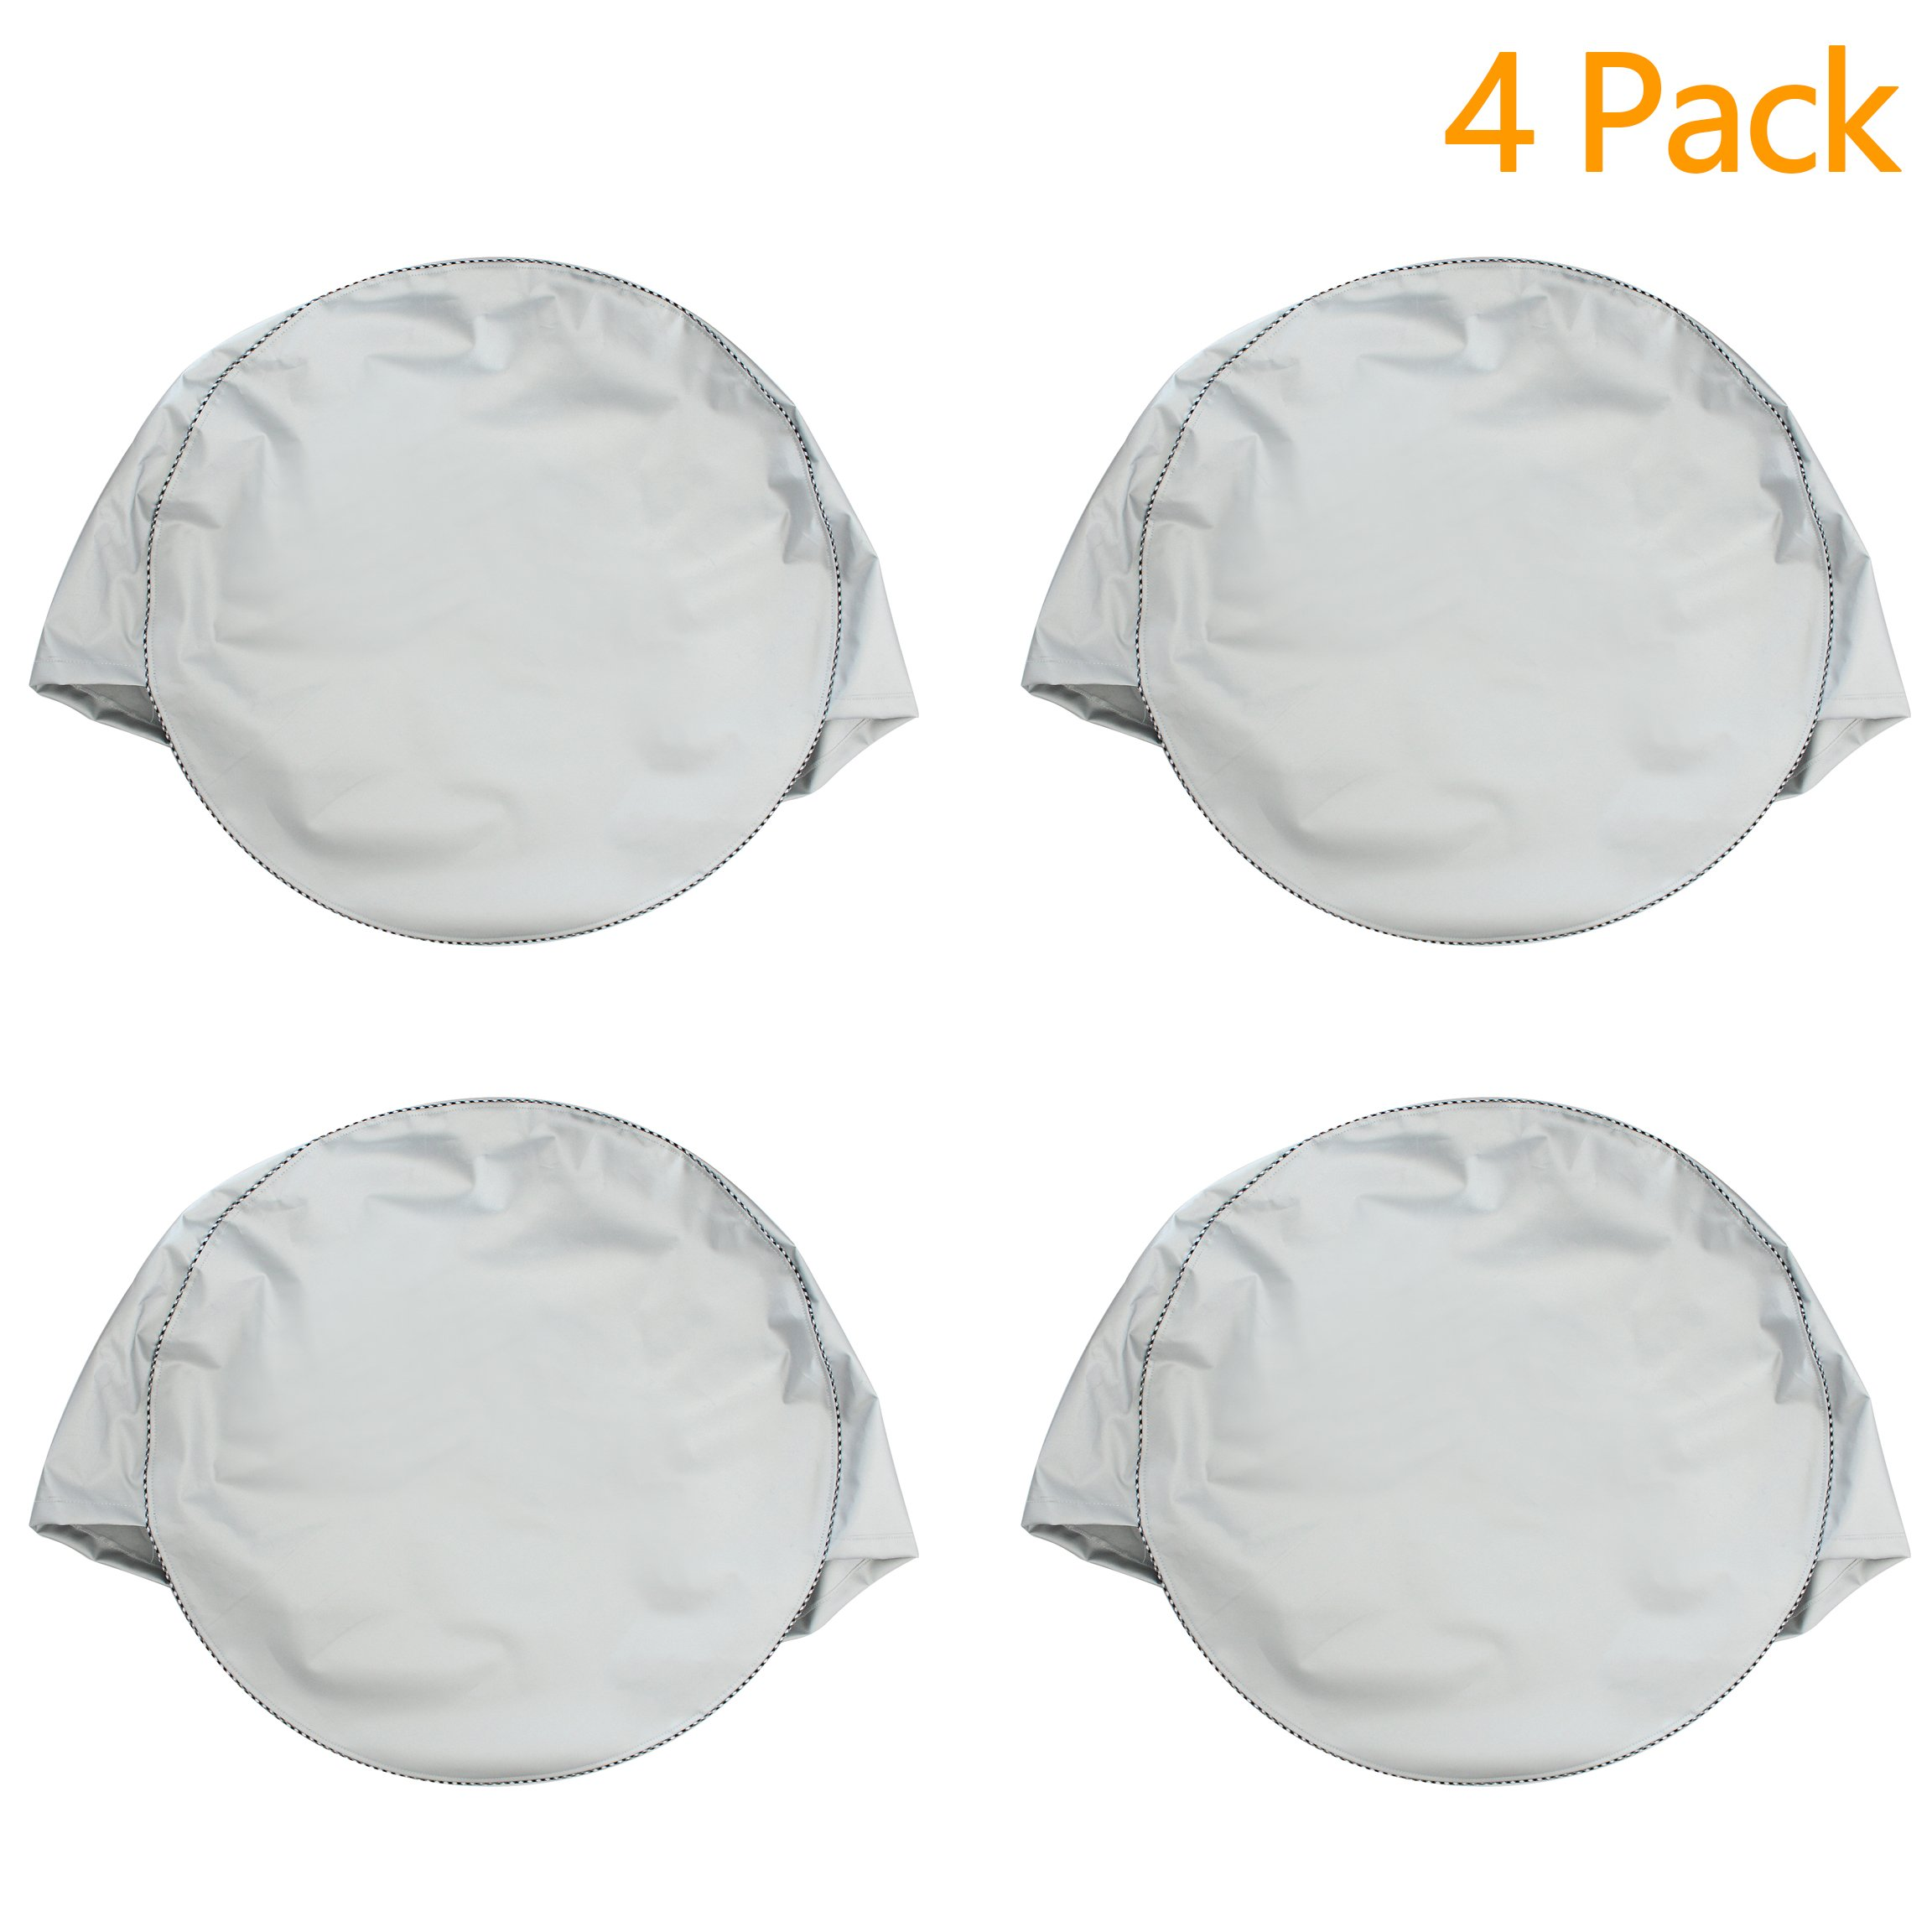 Mr.You Tire Covers For RV Auto Truck Car Camper Trailer Waterproof Sun-proof Fits 24'' to 26'' Tire Diameters 5 YR Warranty Silver 4 Pack